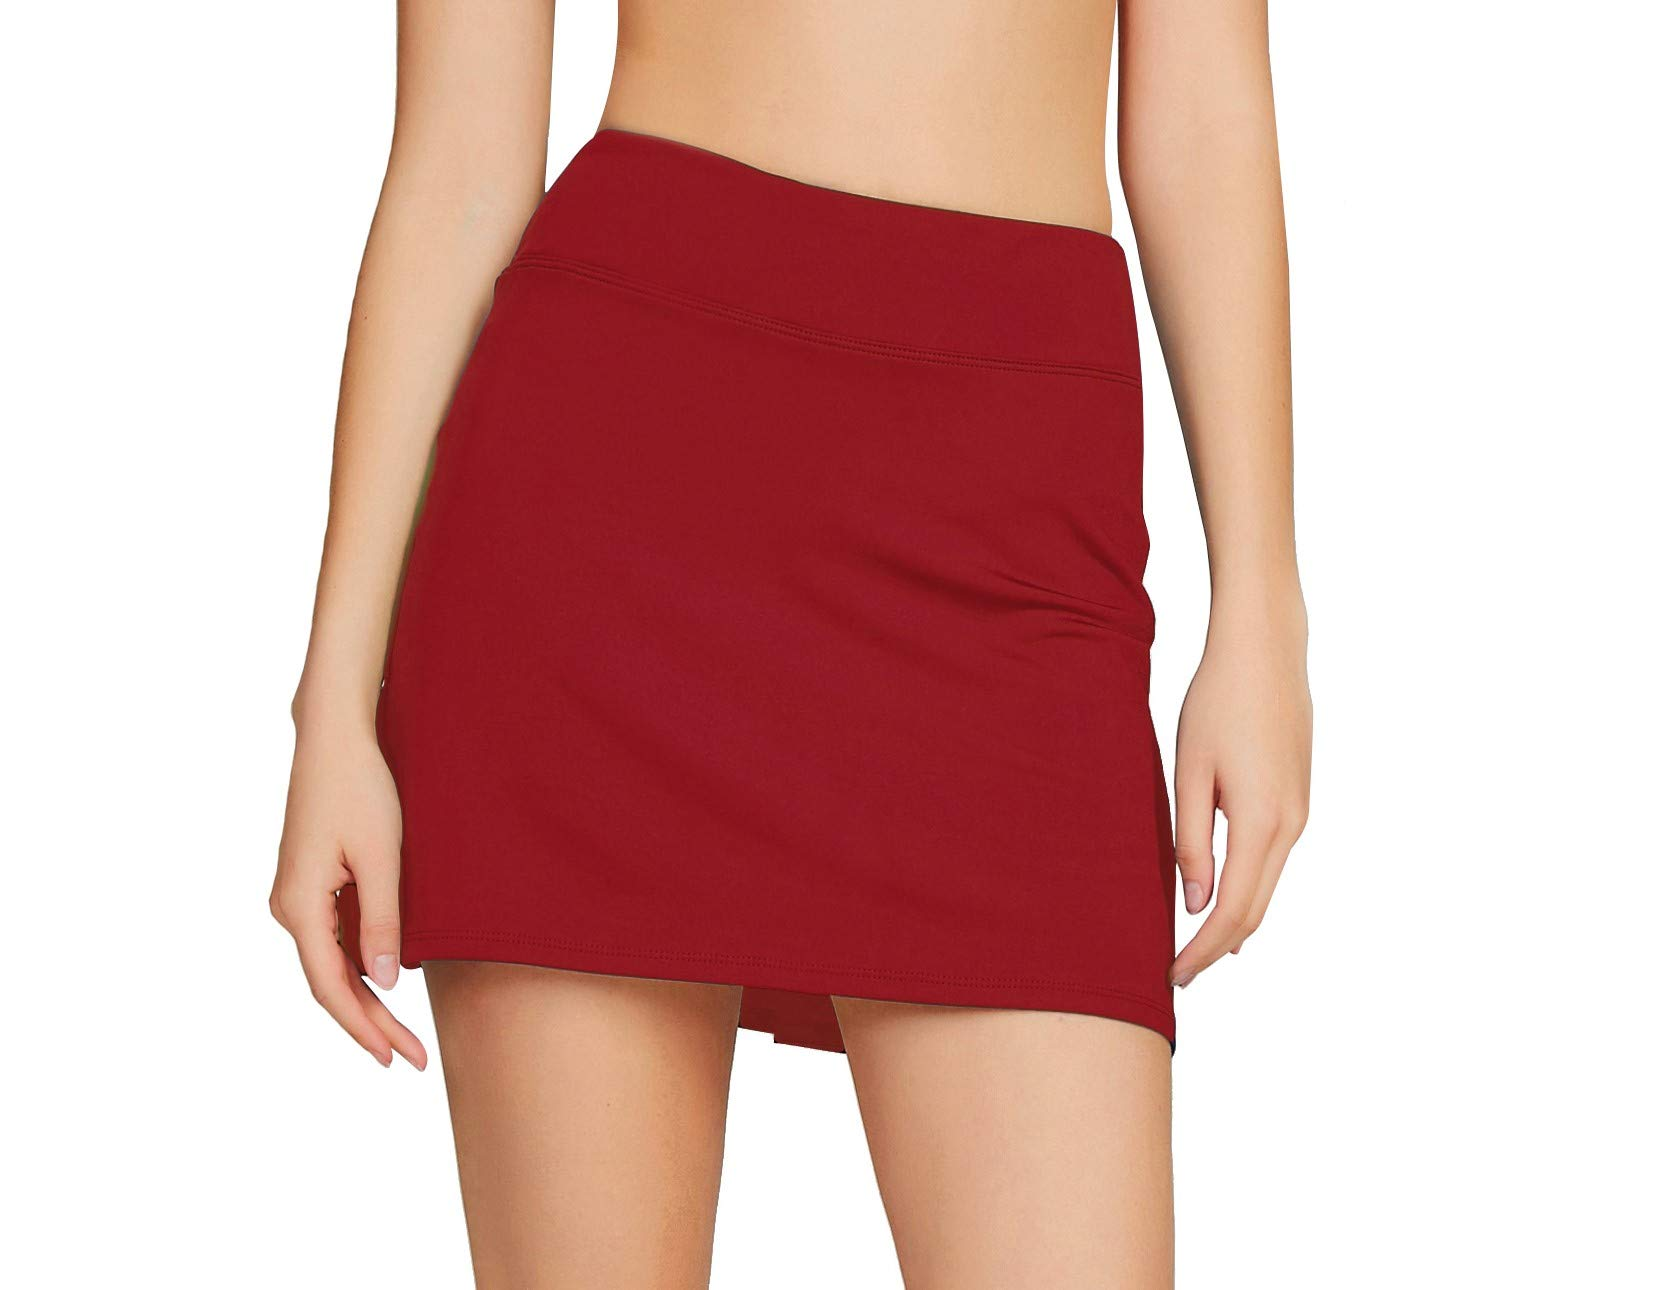 Cityoung Women's Casual Pleated Tennis Golf Skirt with Underneath Shorts Running Skorts rd XL by Cityoung